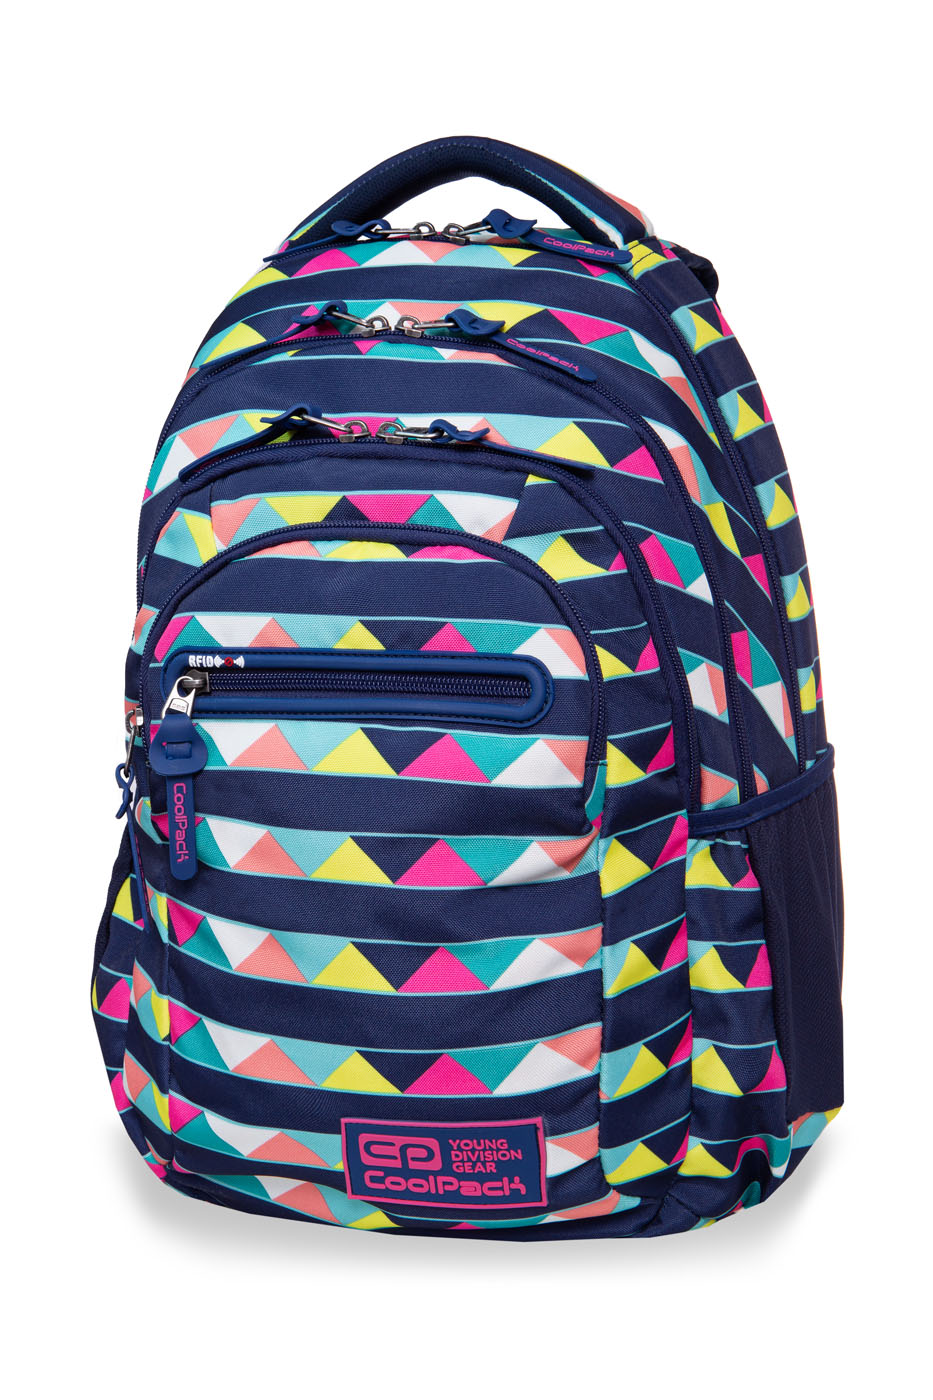 Coolpack - college tech - youth backpack - cancun